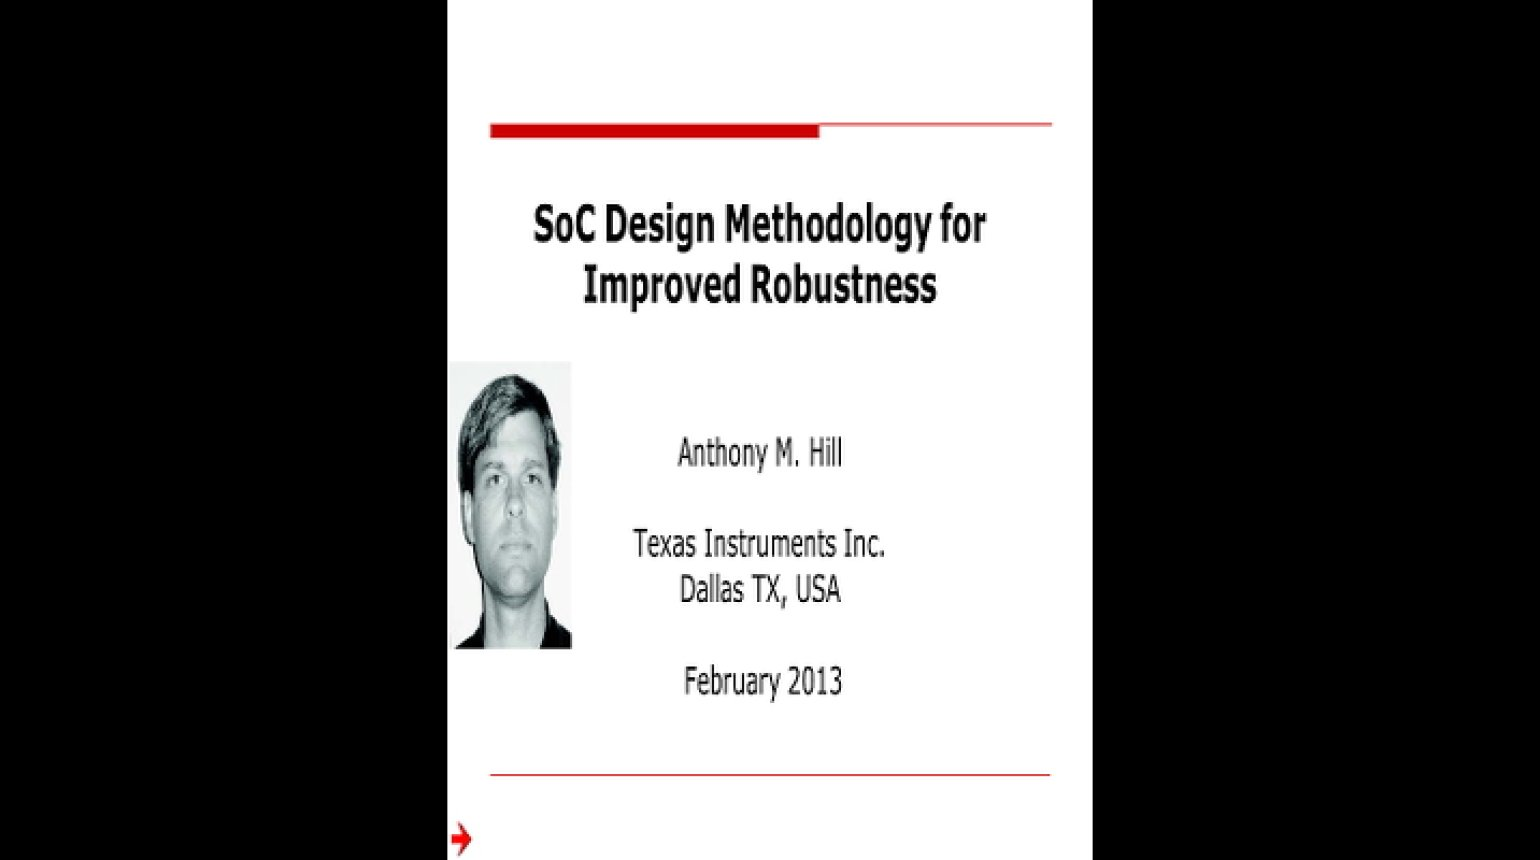 SoC Design Methodology for Improved Robustness Video